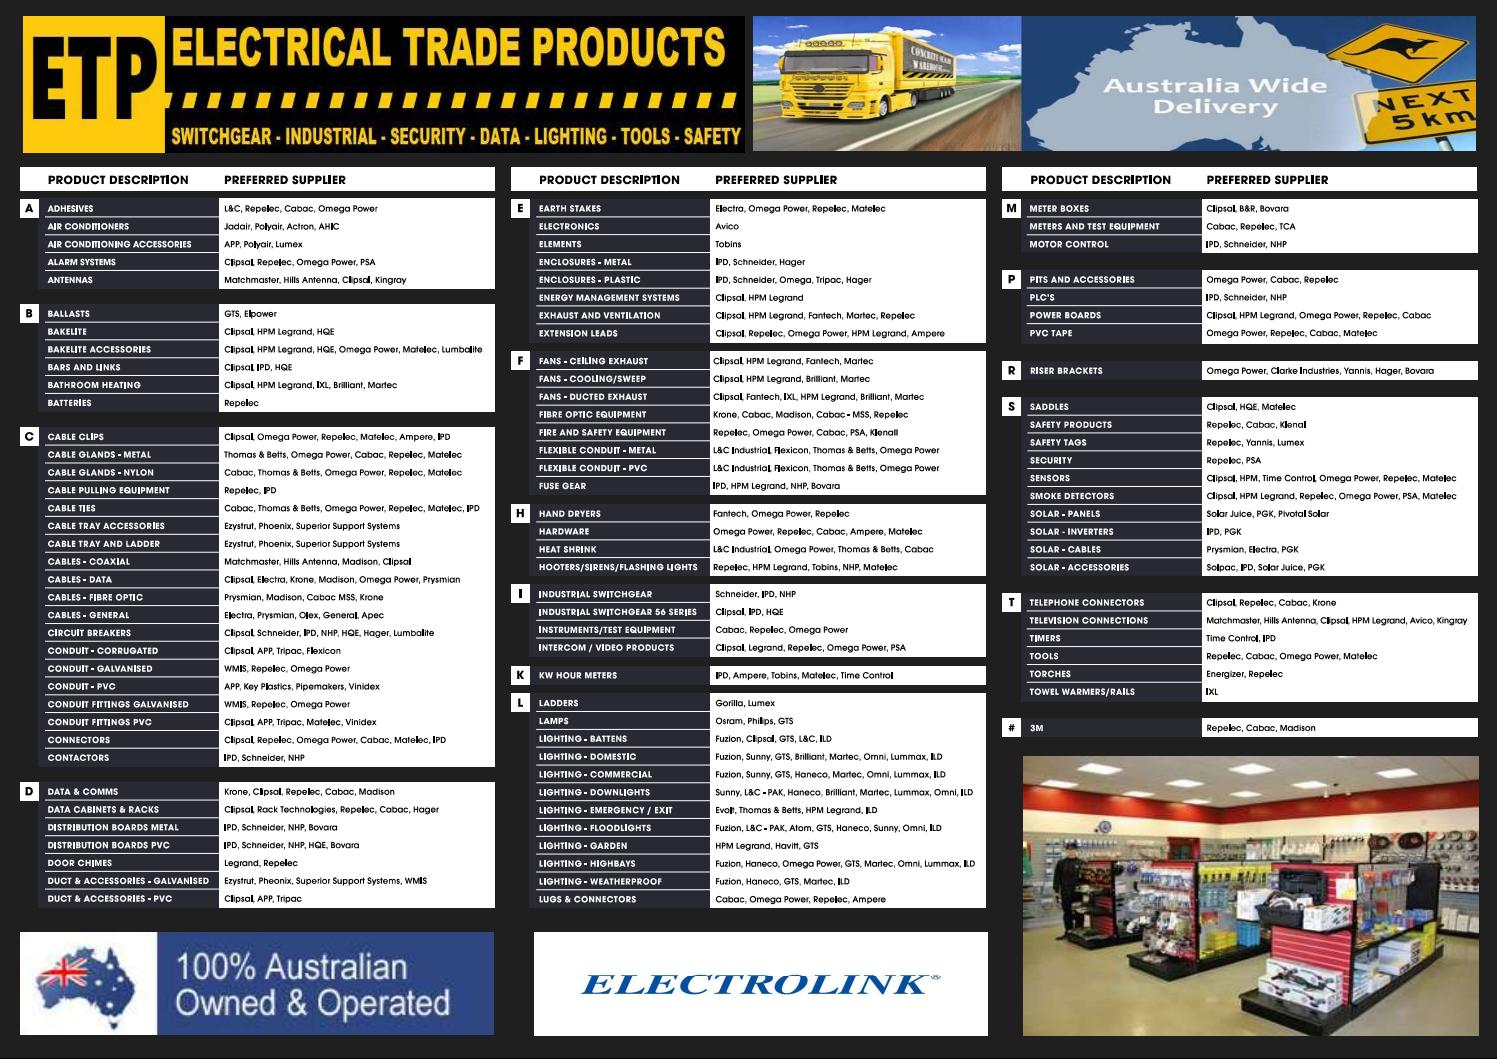 Etp suppliers list pdf client marketing